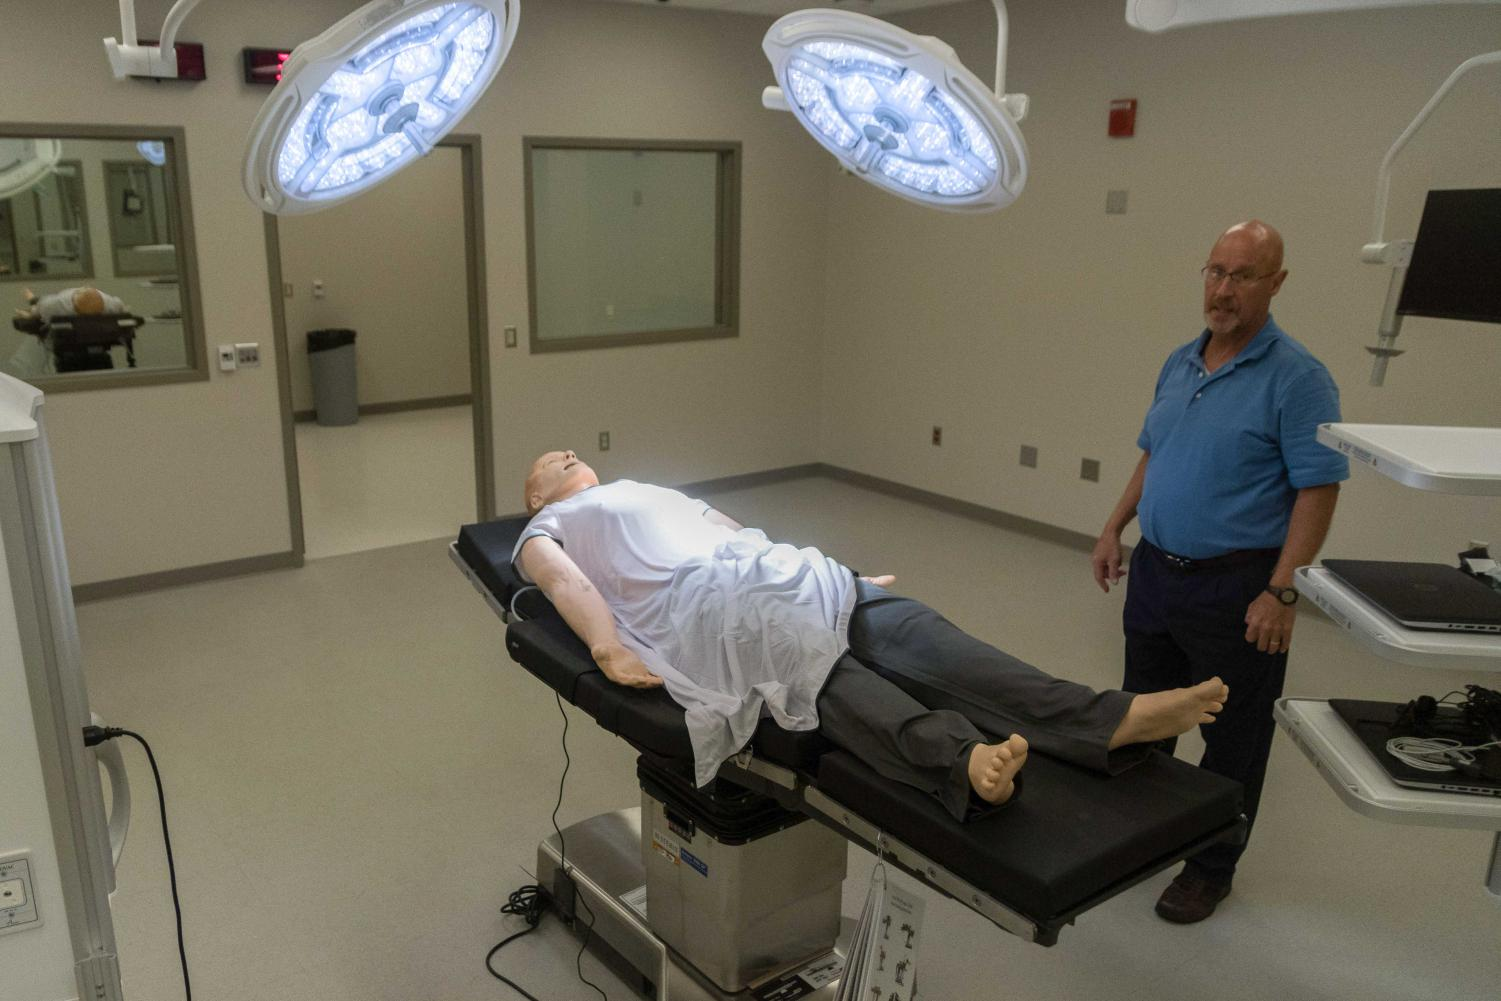 The Jump Simulation Center of cially opened its doors to students on campus on July 27. The center offers medical students realistic settings and equipment to help them get used to working in a hospital environment.